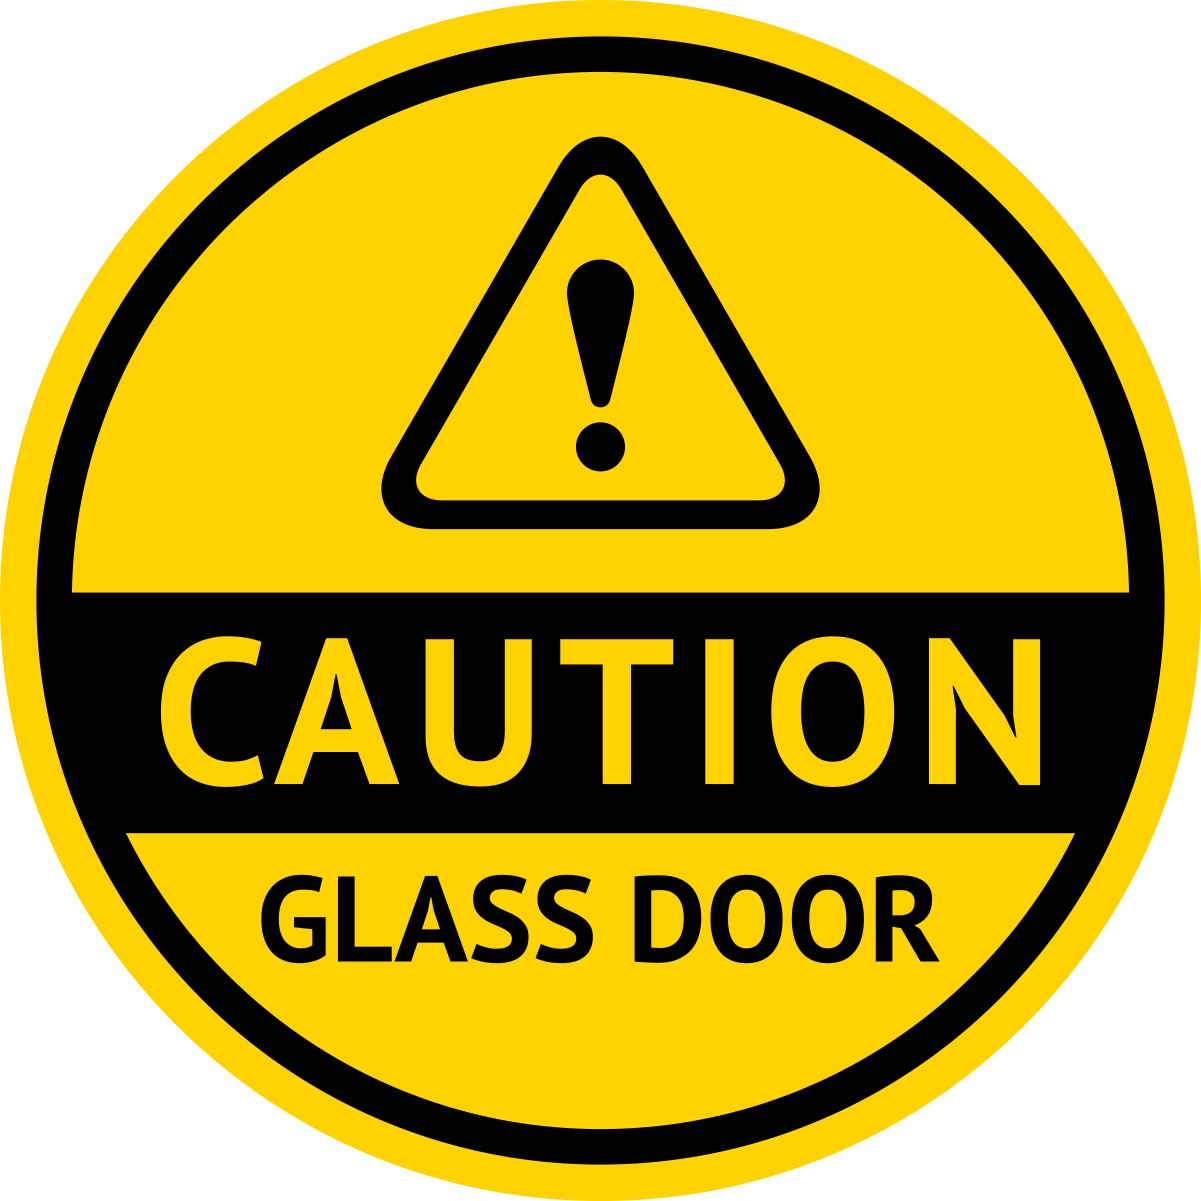 Caution Glass Door Sticker